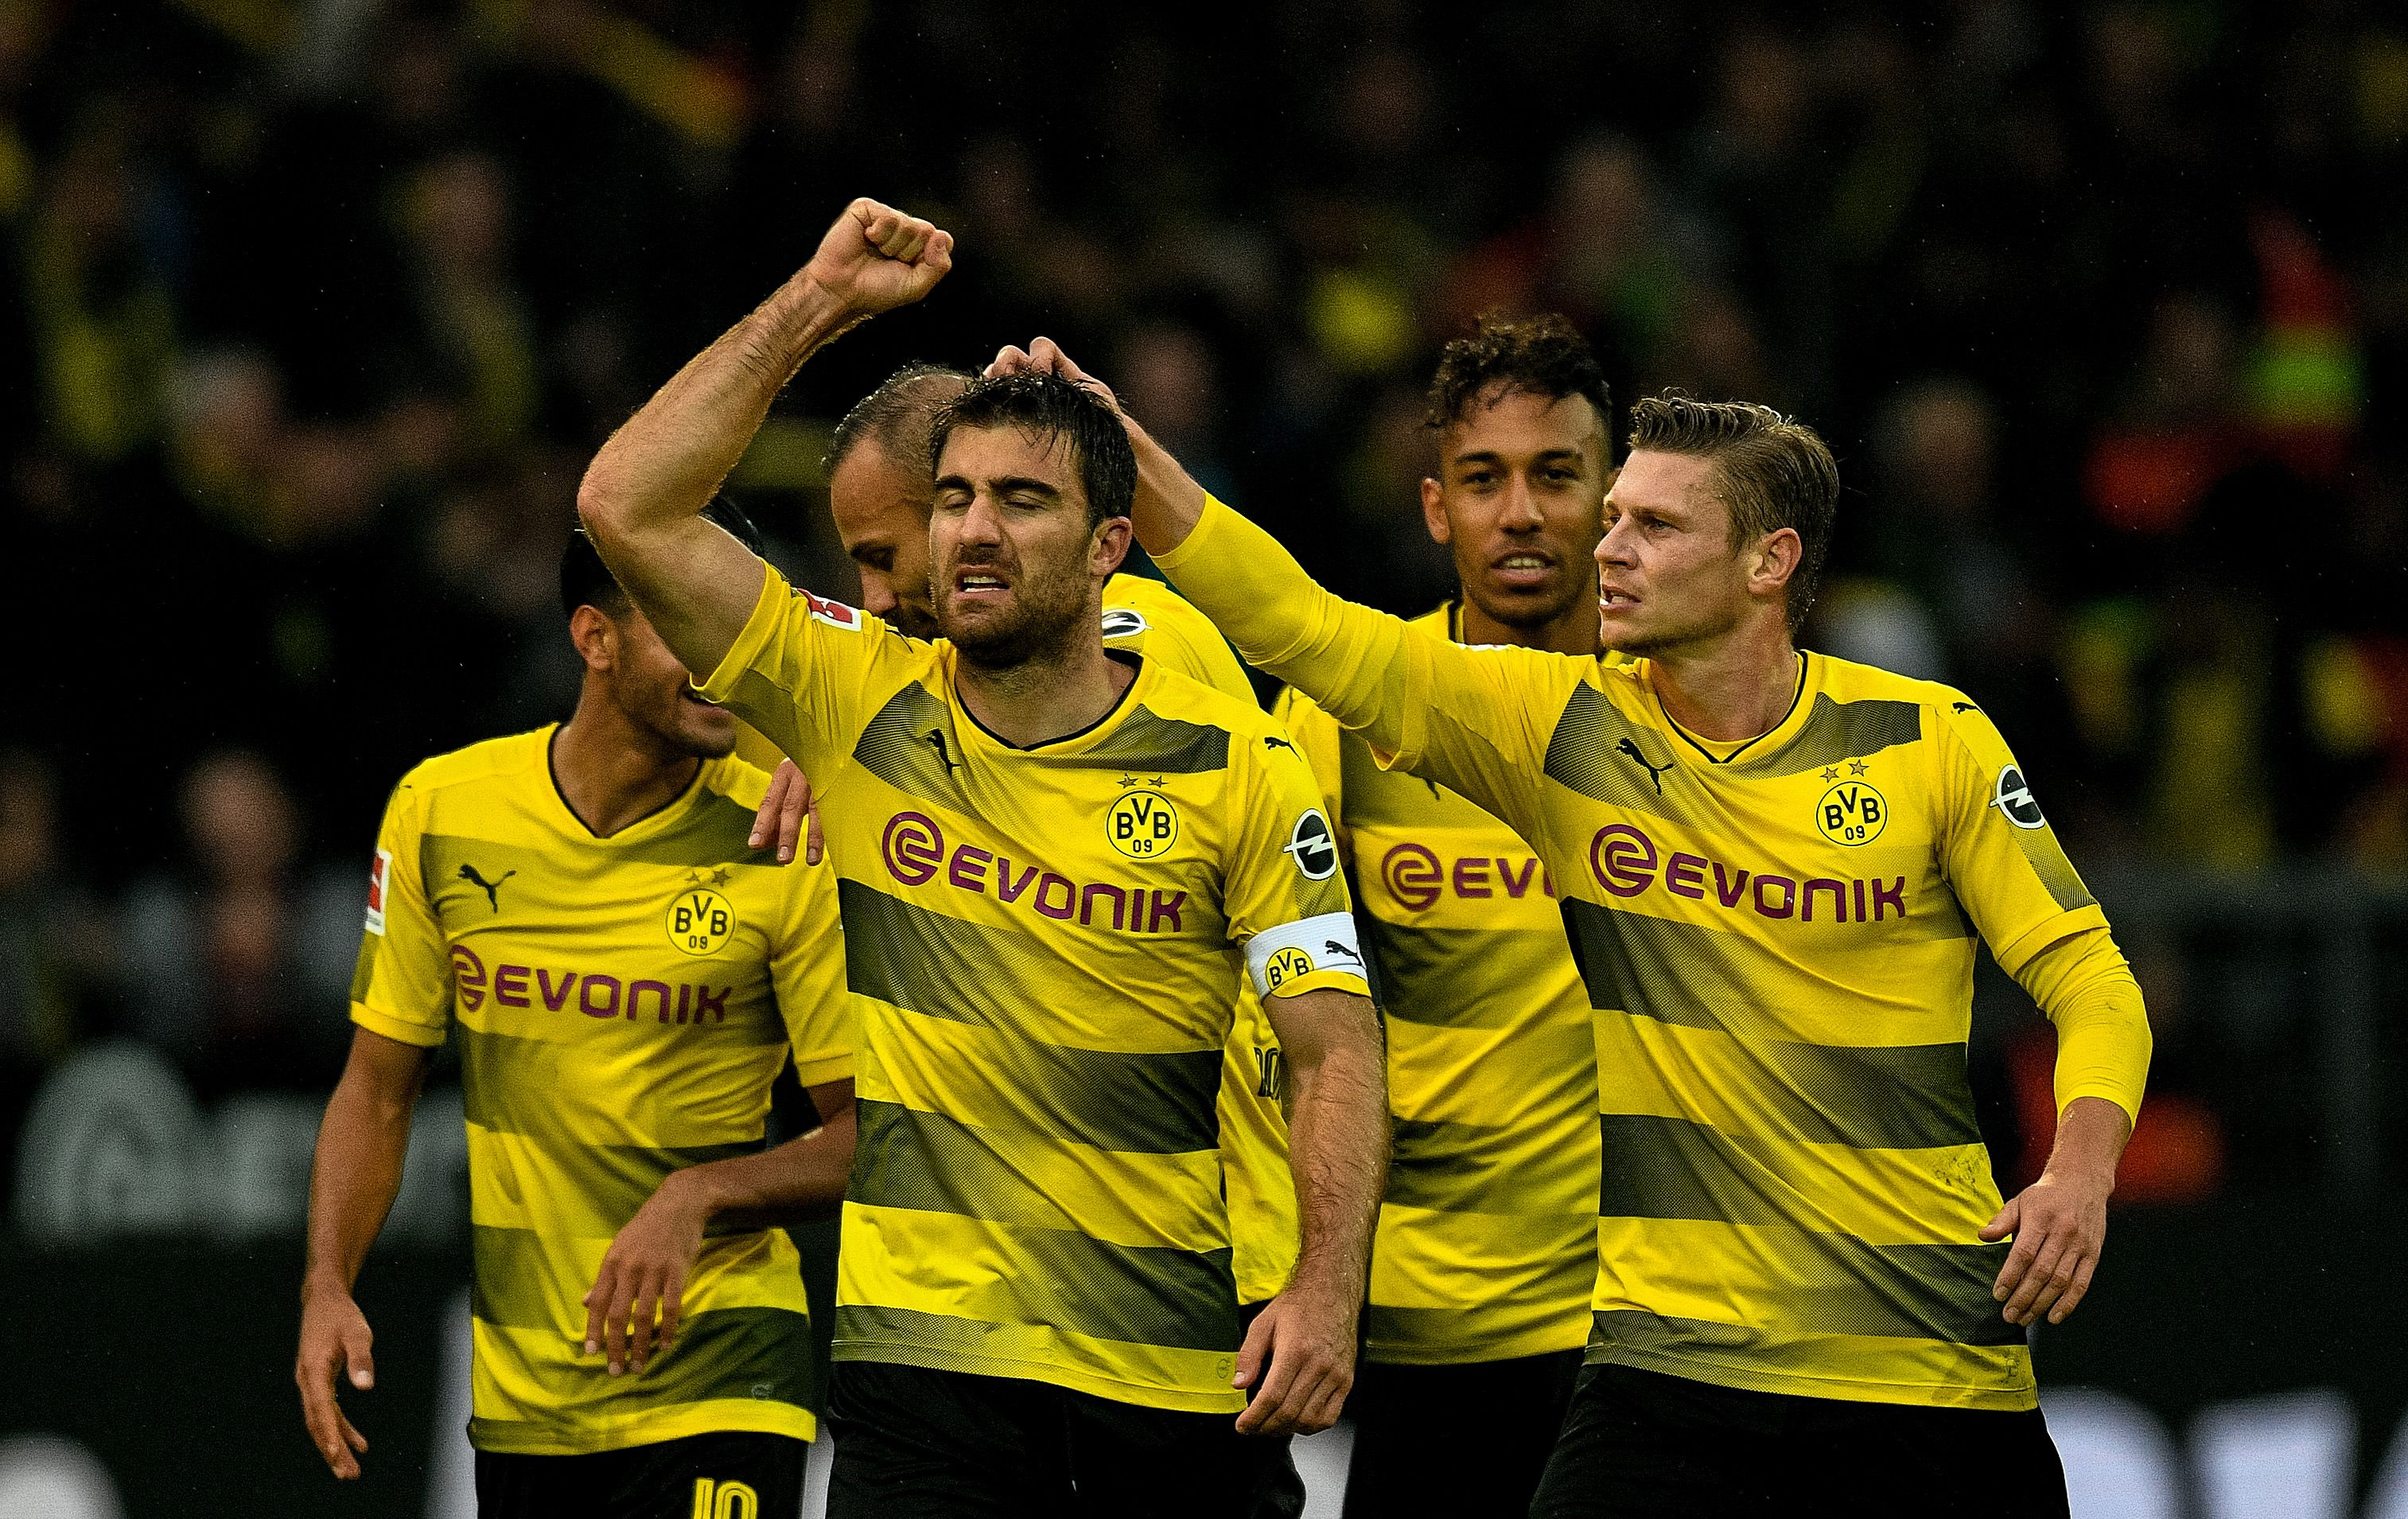 peter bosz with Borussia Dortmund 5 0 Fc Koln Player Ratings on Andre Onana Ajax Latest Sweeper Keeper Extraodinaire further 67919011 moreover 2160288 Neres Dit Is Nog Maar Het Begin additionally 361424 Djt EF BC 9Apep Guardiolas Barcelona Tiki Taka433 Fm2017 as well 100754485.